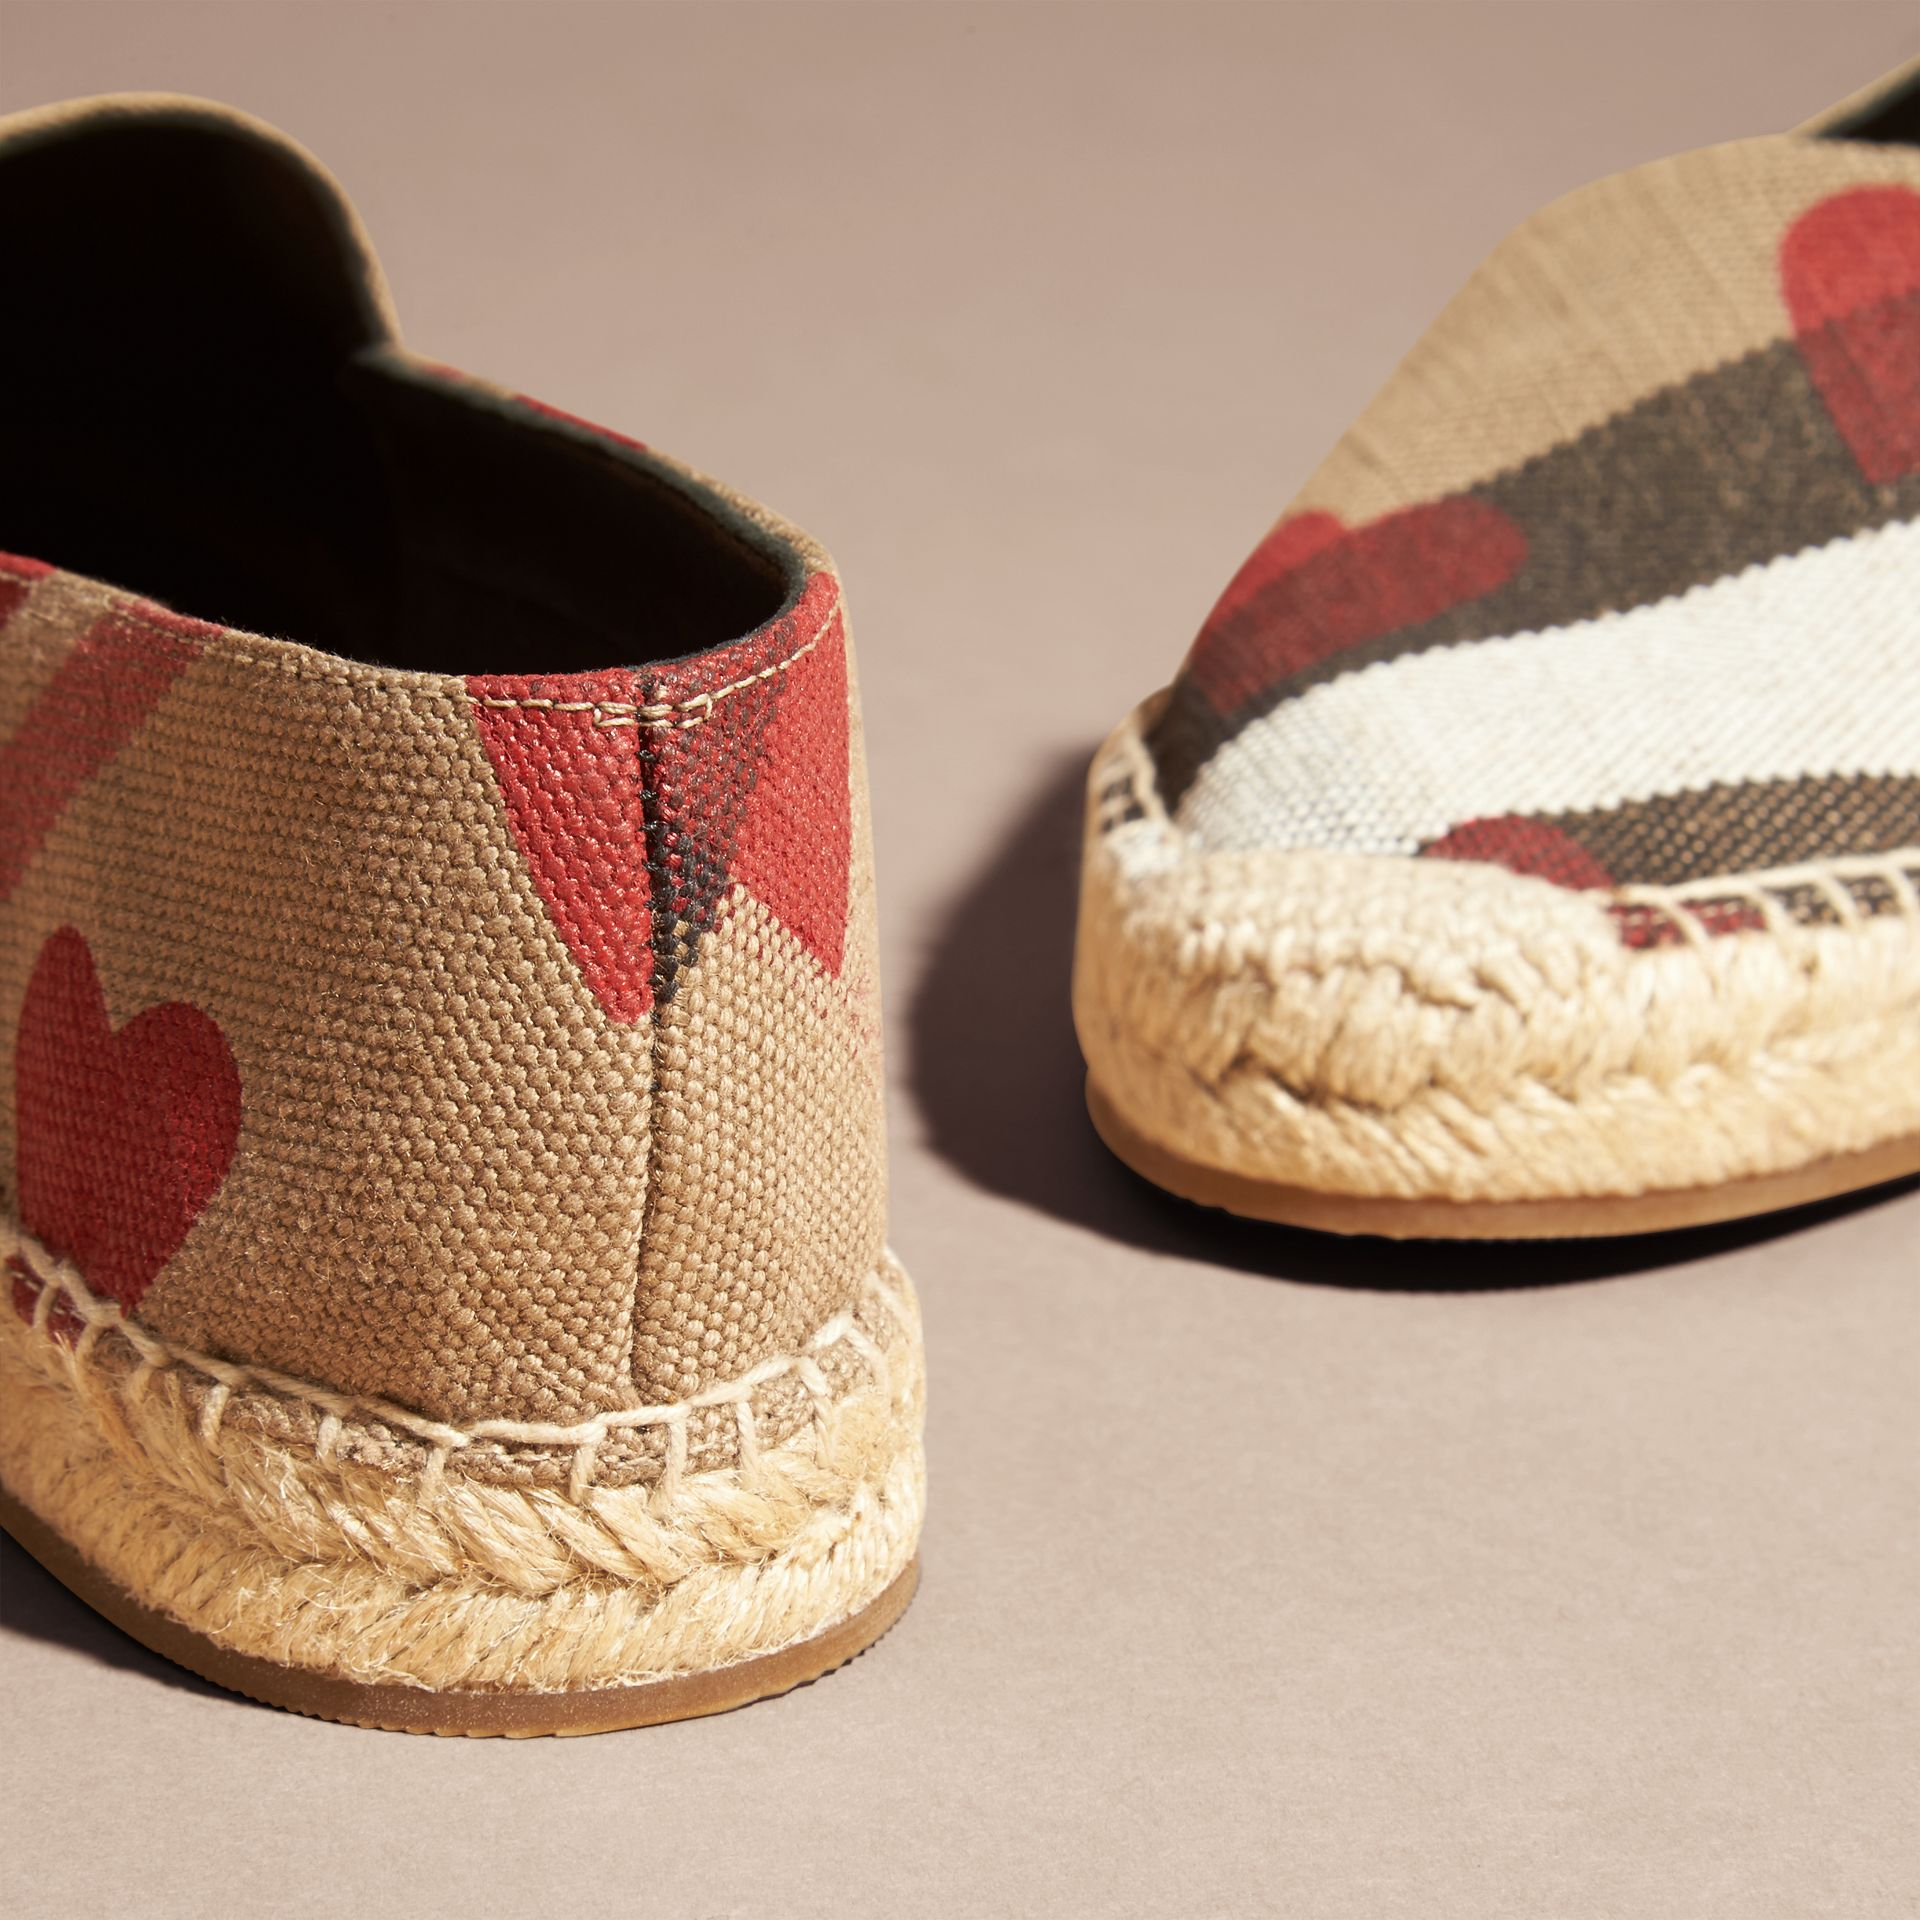 House check/rouge parade Espadrilles à motif Canvas check et imprimé à cœurs - photo de la galerie 4